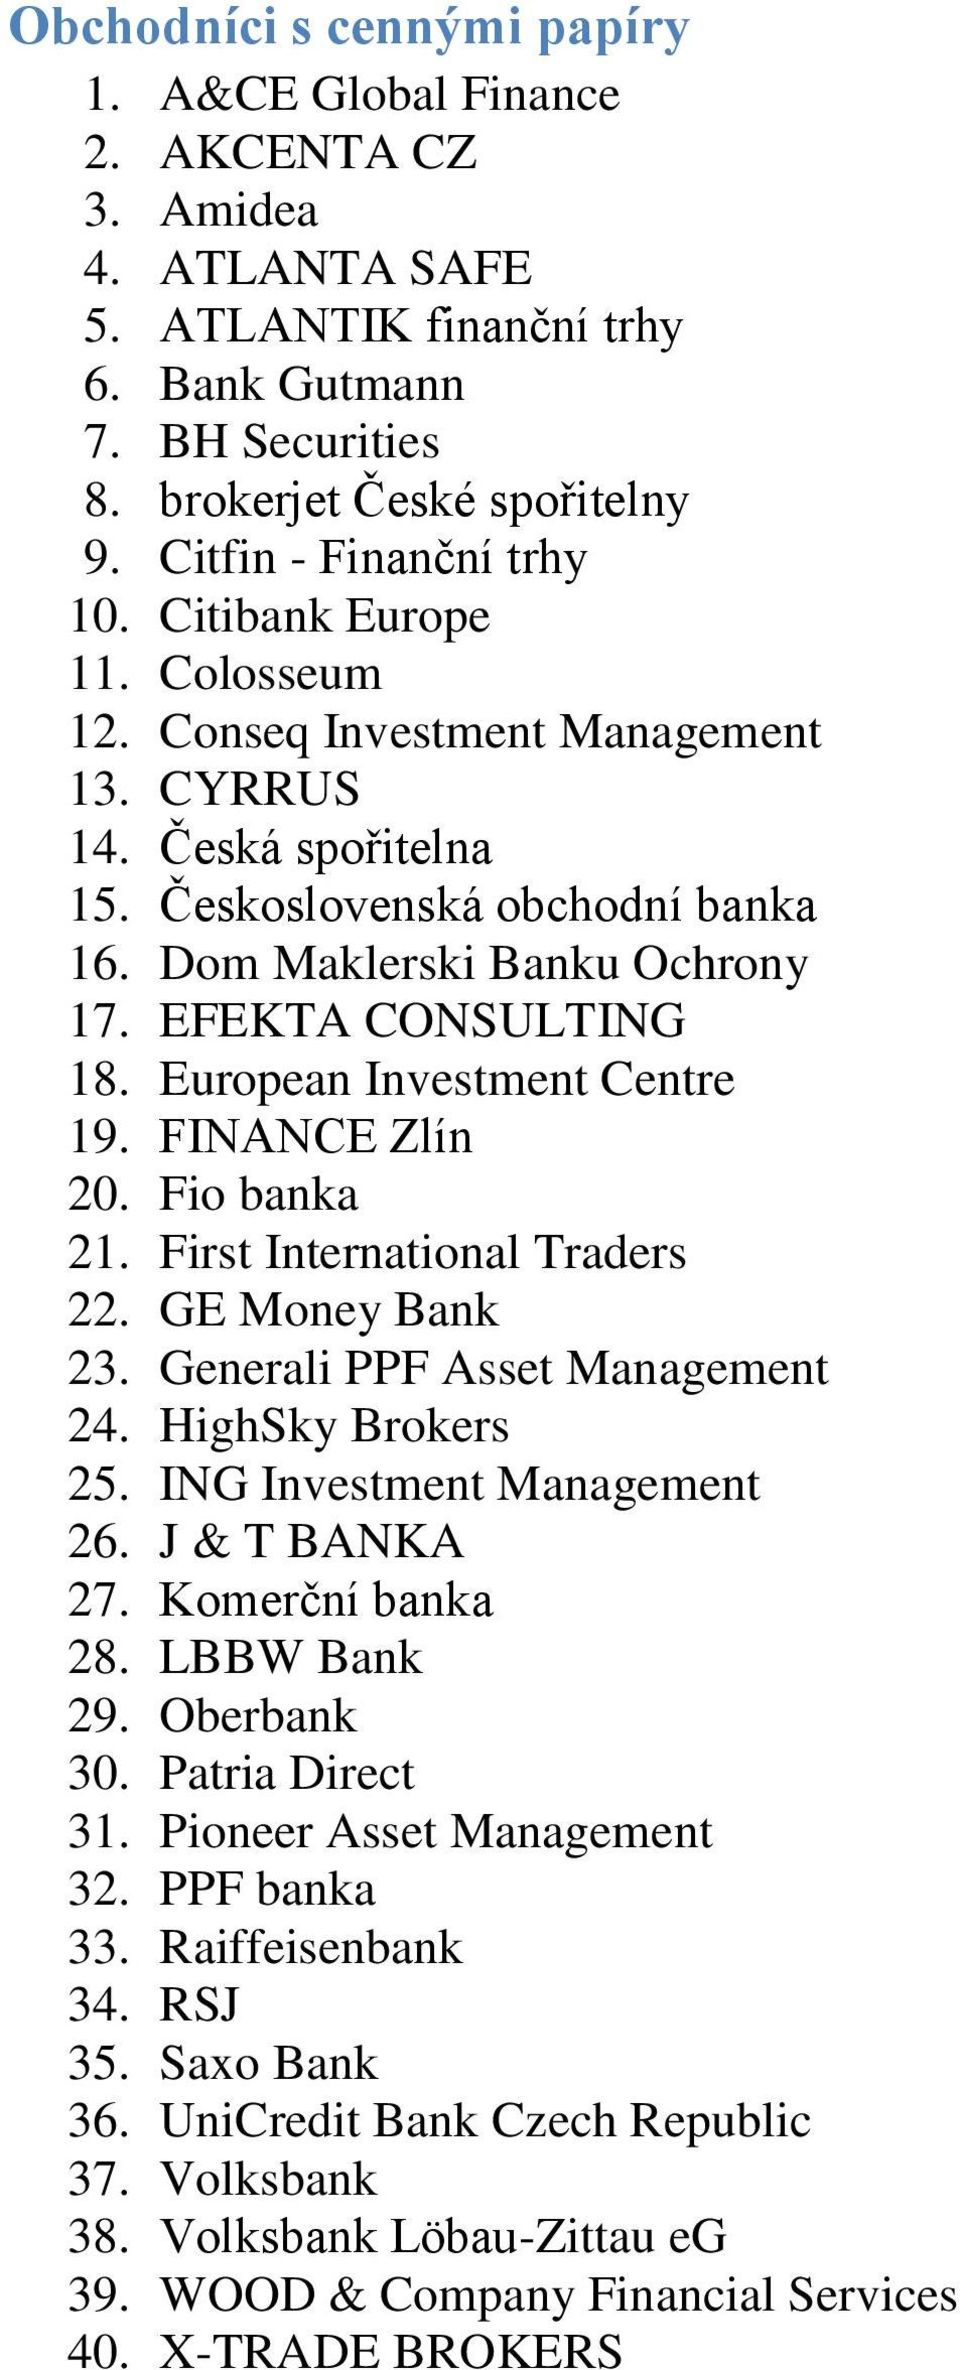 EFEKTA CONSULTING 18. European Investment Centre 19. FINANCE Zlín 20. Fio banka 21. First International Traders 22. GE Money Bank 23. Generali PPF Asset Management 24. HighSky Brokers 25.